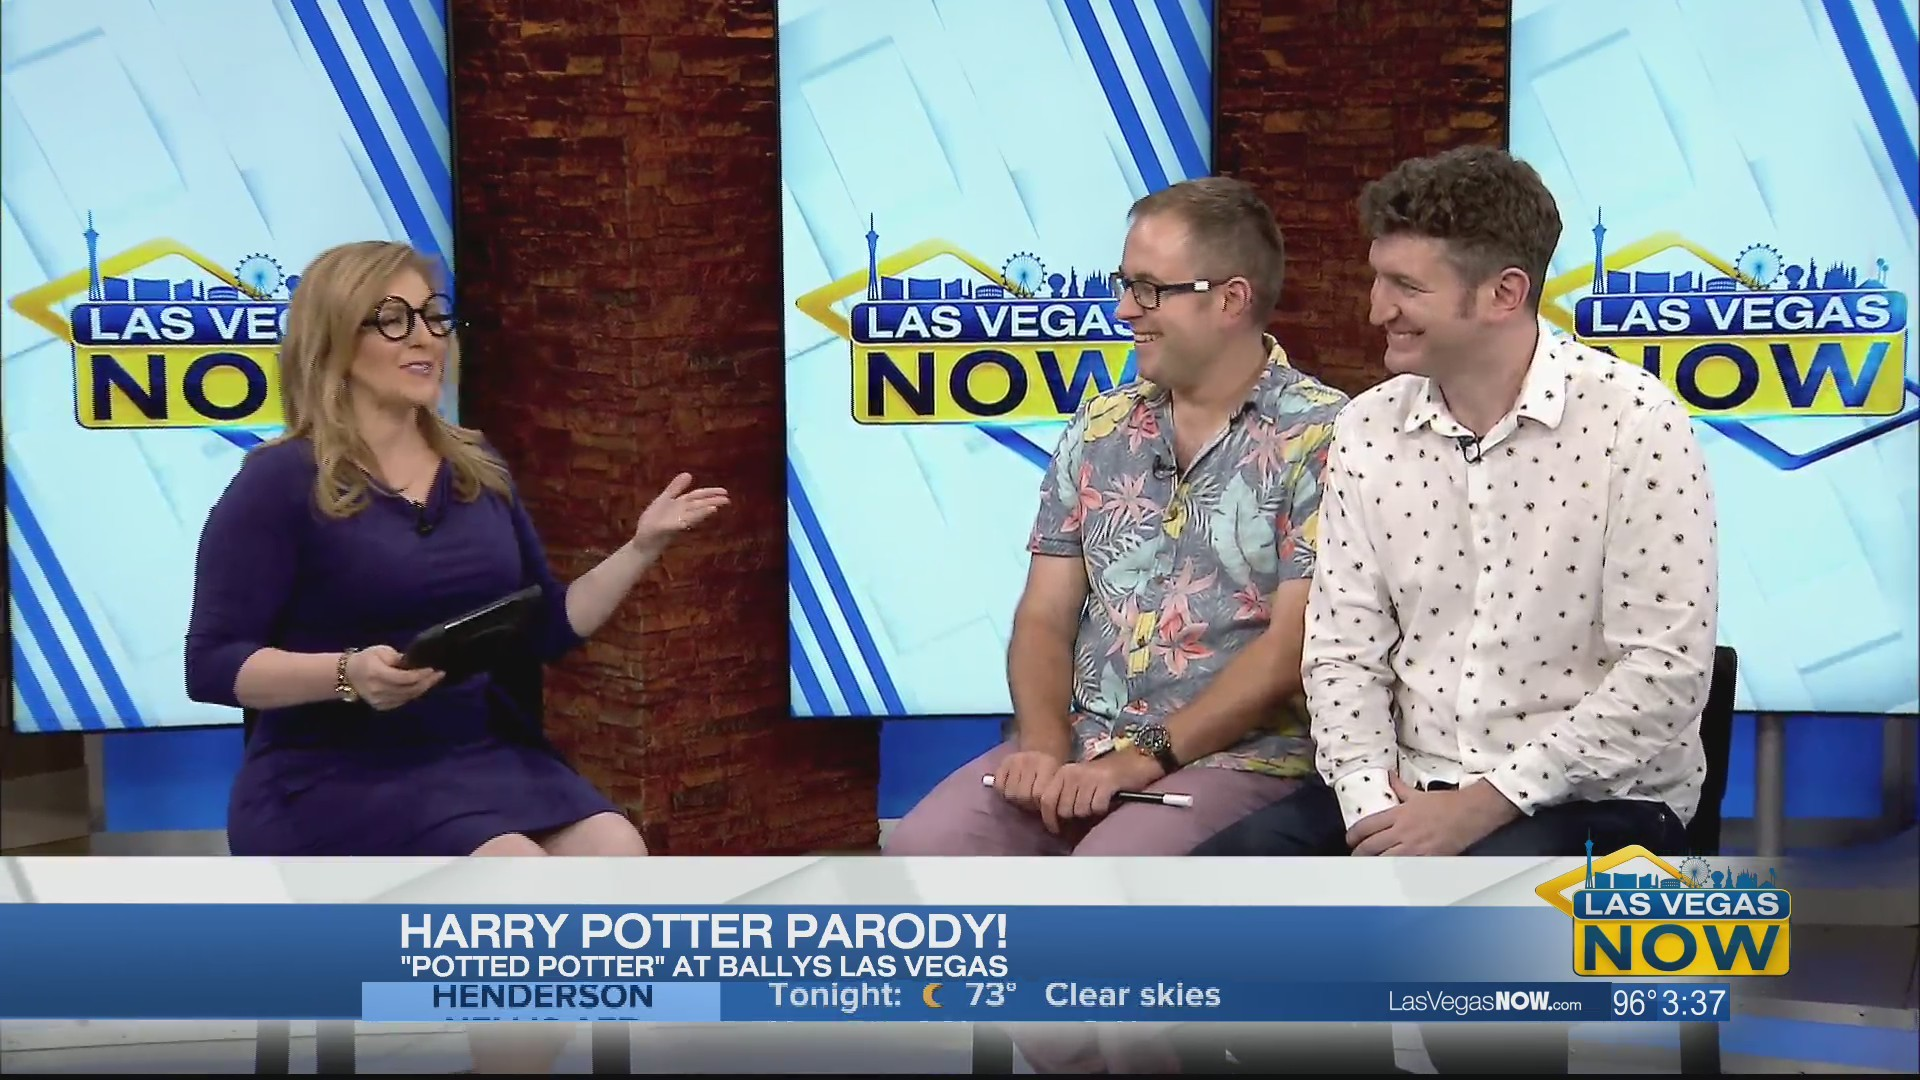 The story of Harry Potter comes to Vegas